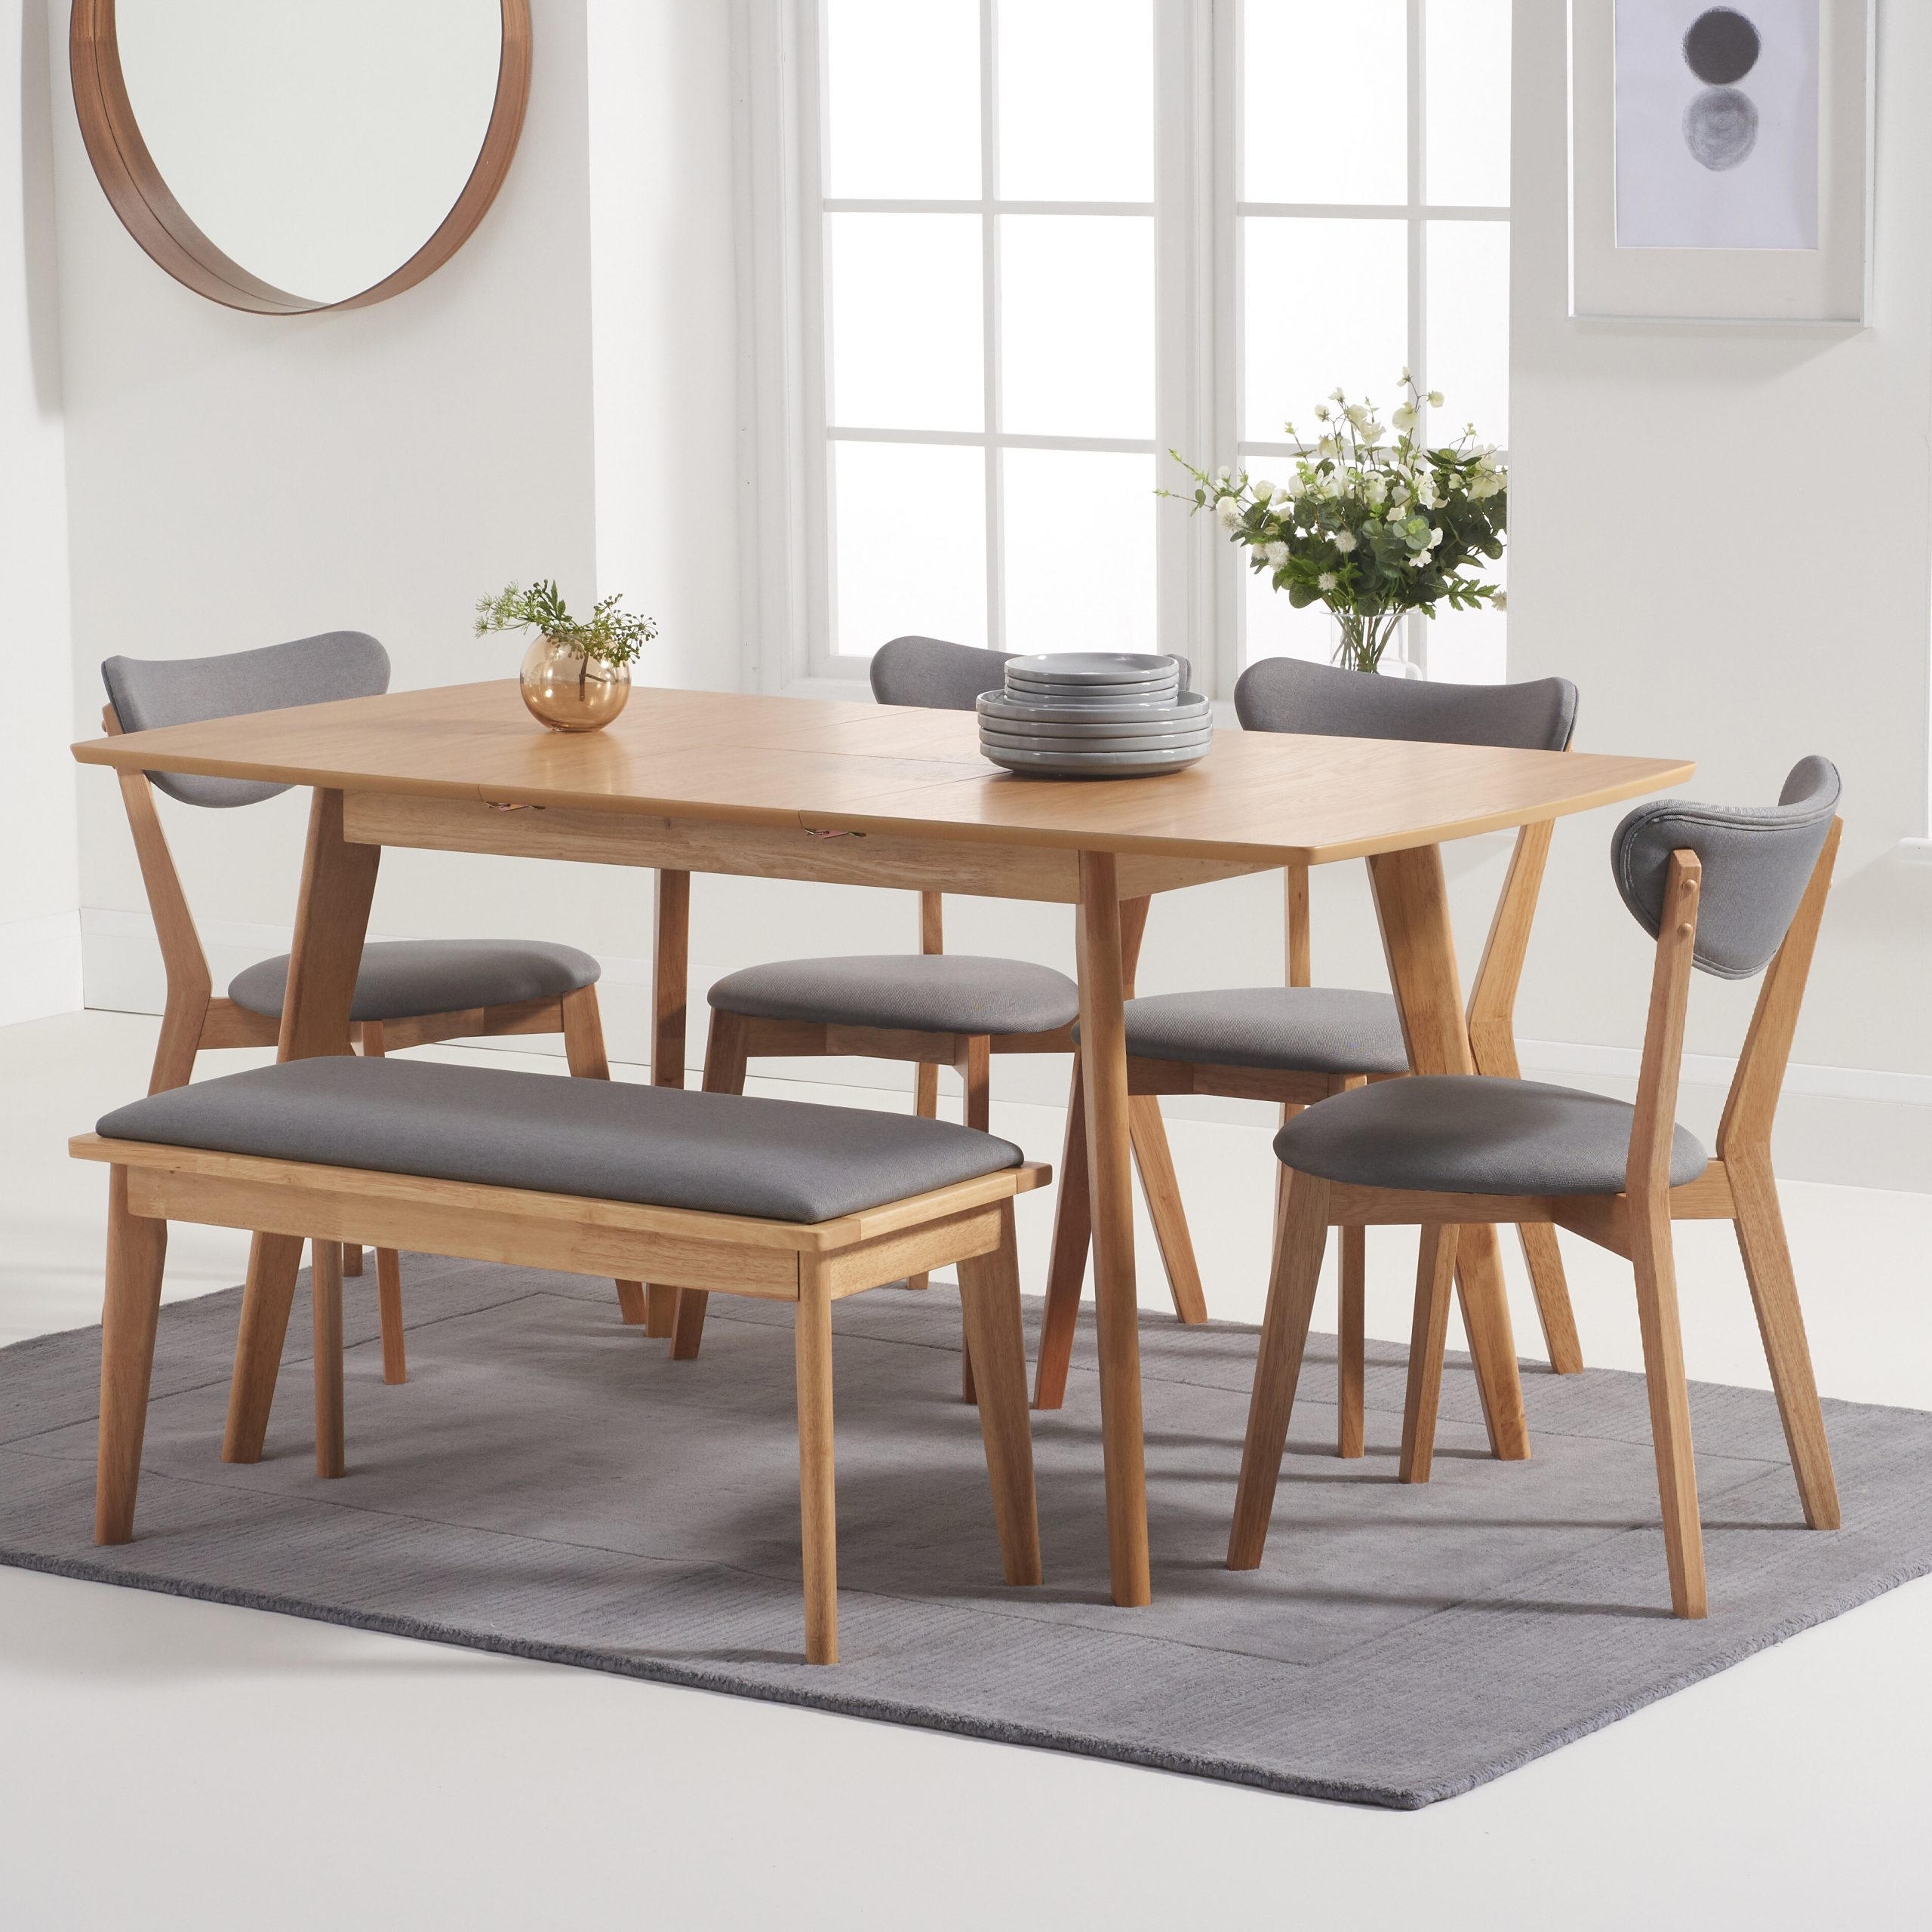 Reed Extending Dining Tables intended for Famous Ideas About Extending Dining Bench, - Howellmagic Dining